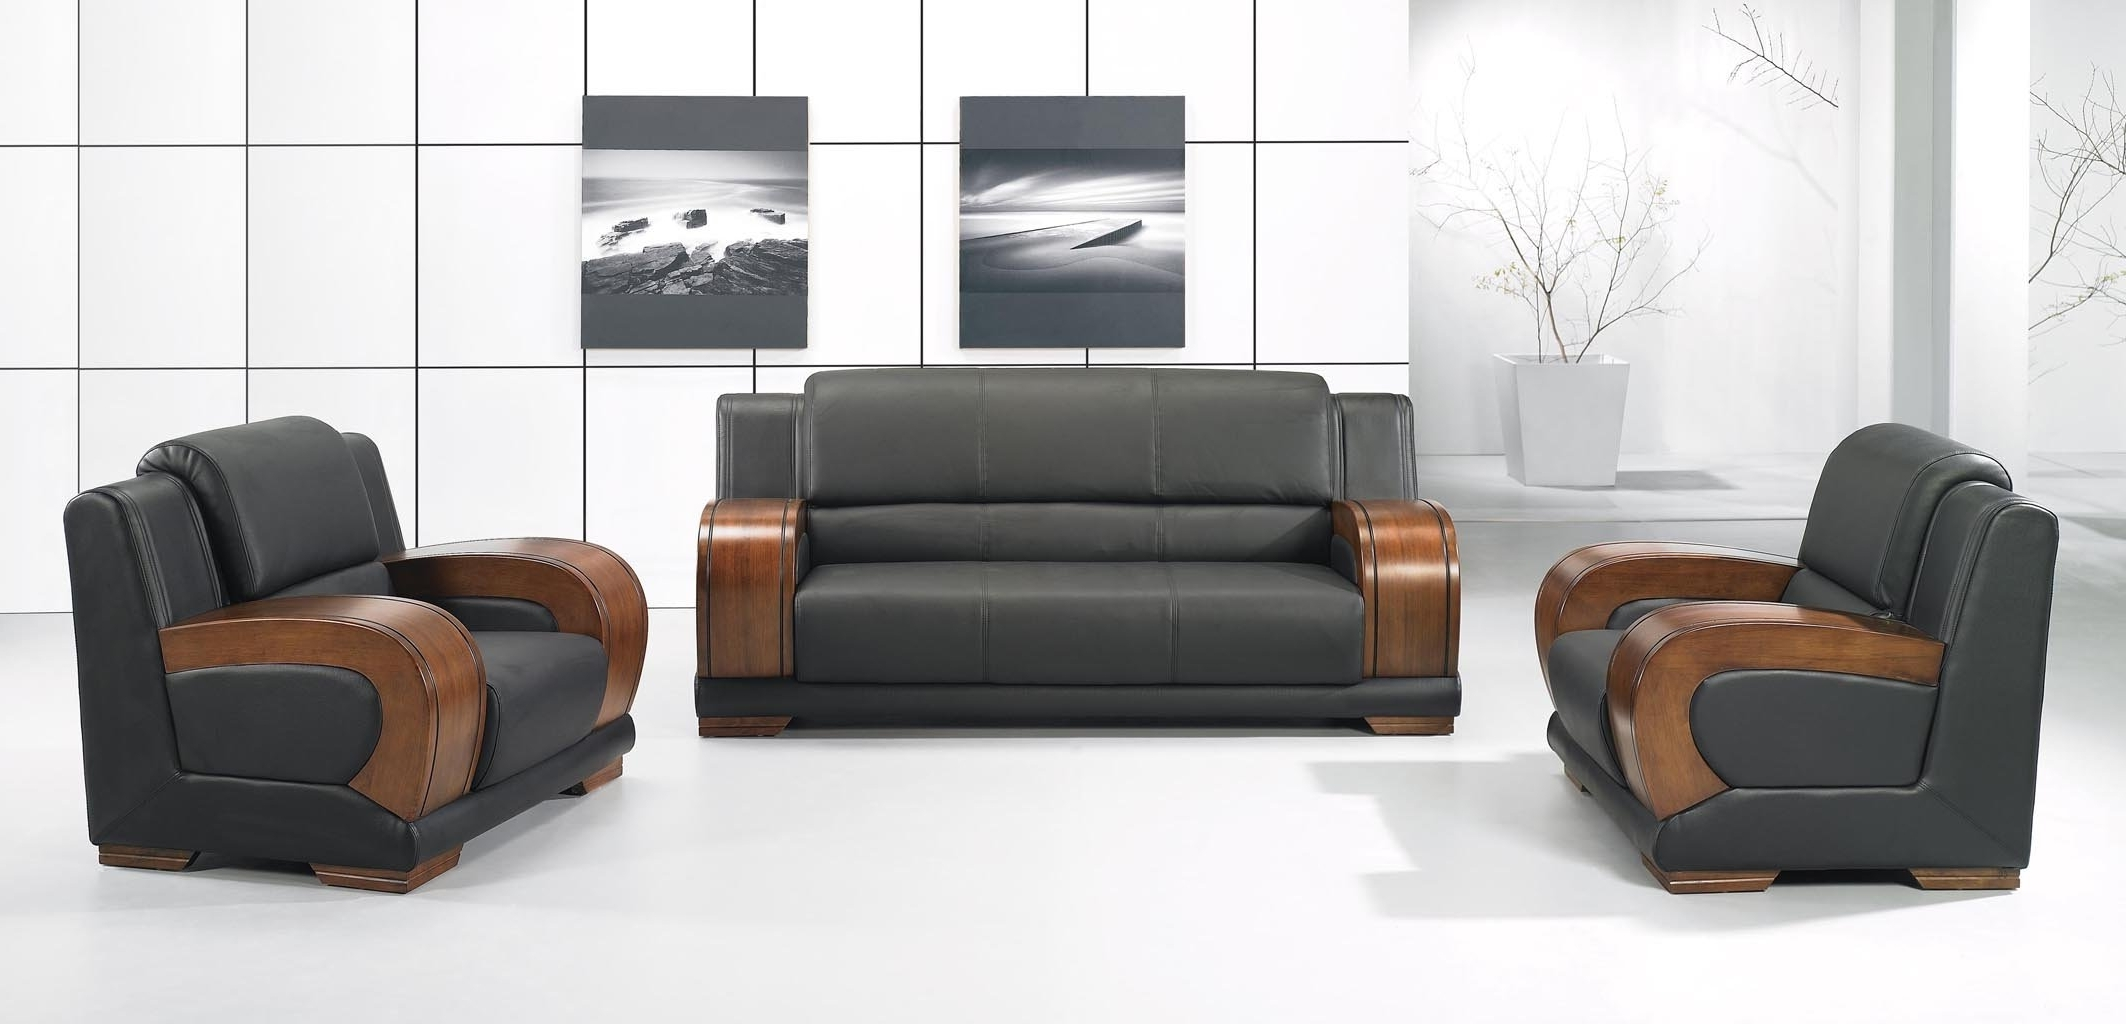 Office Sofas And Chairs Pertaining To Trendy Reception Office Furniture Type Architect Modern Black Guest (View 7 of 20)